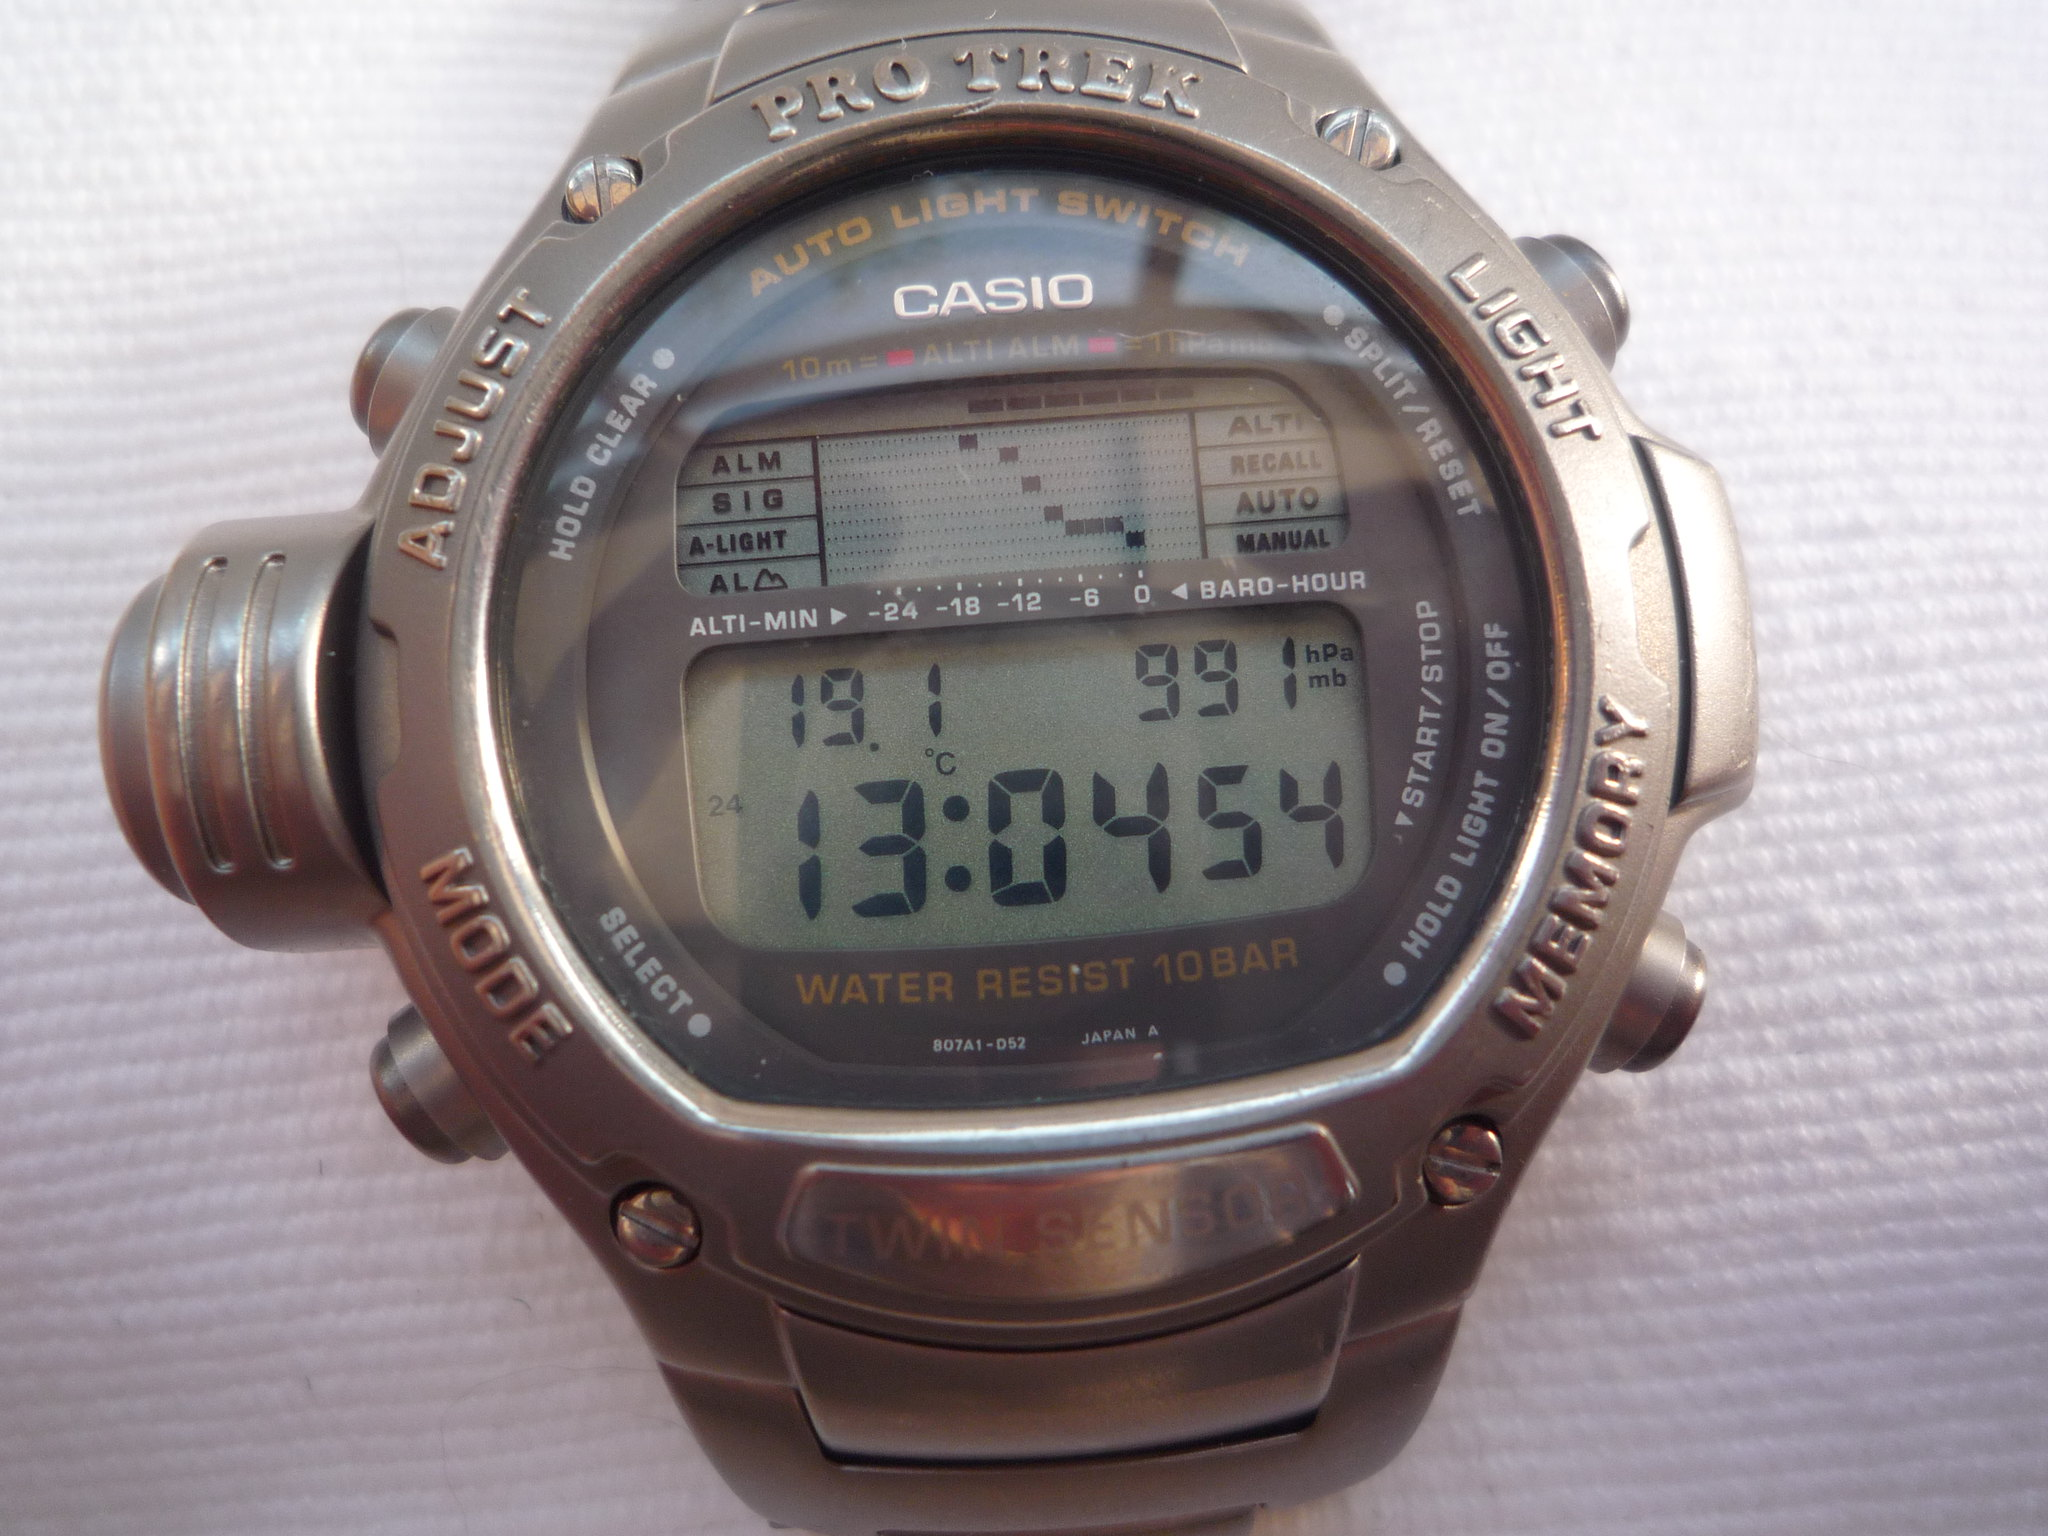 compass rare watch dsc thermometer pat triple digital clean products abc watches pathfinder klawk sensor ddbf casio